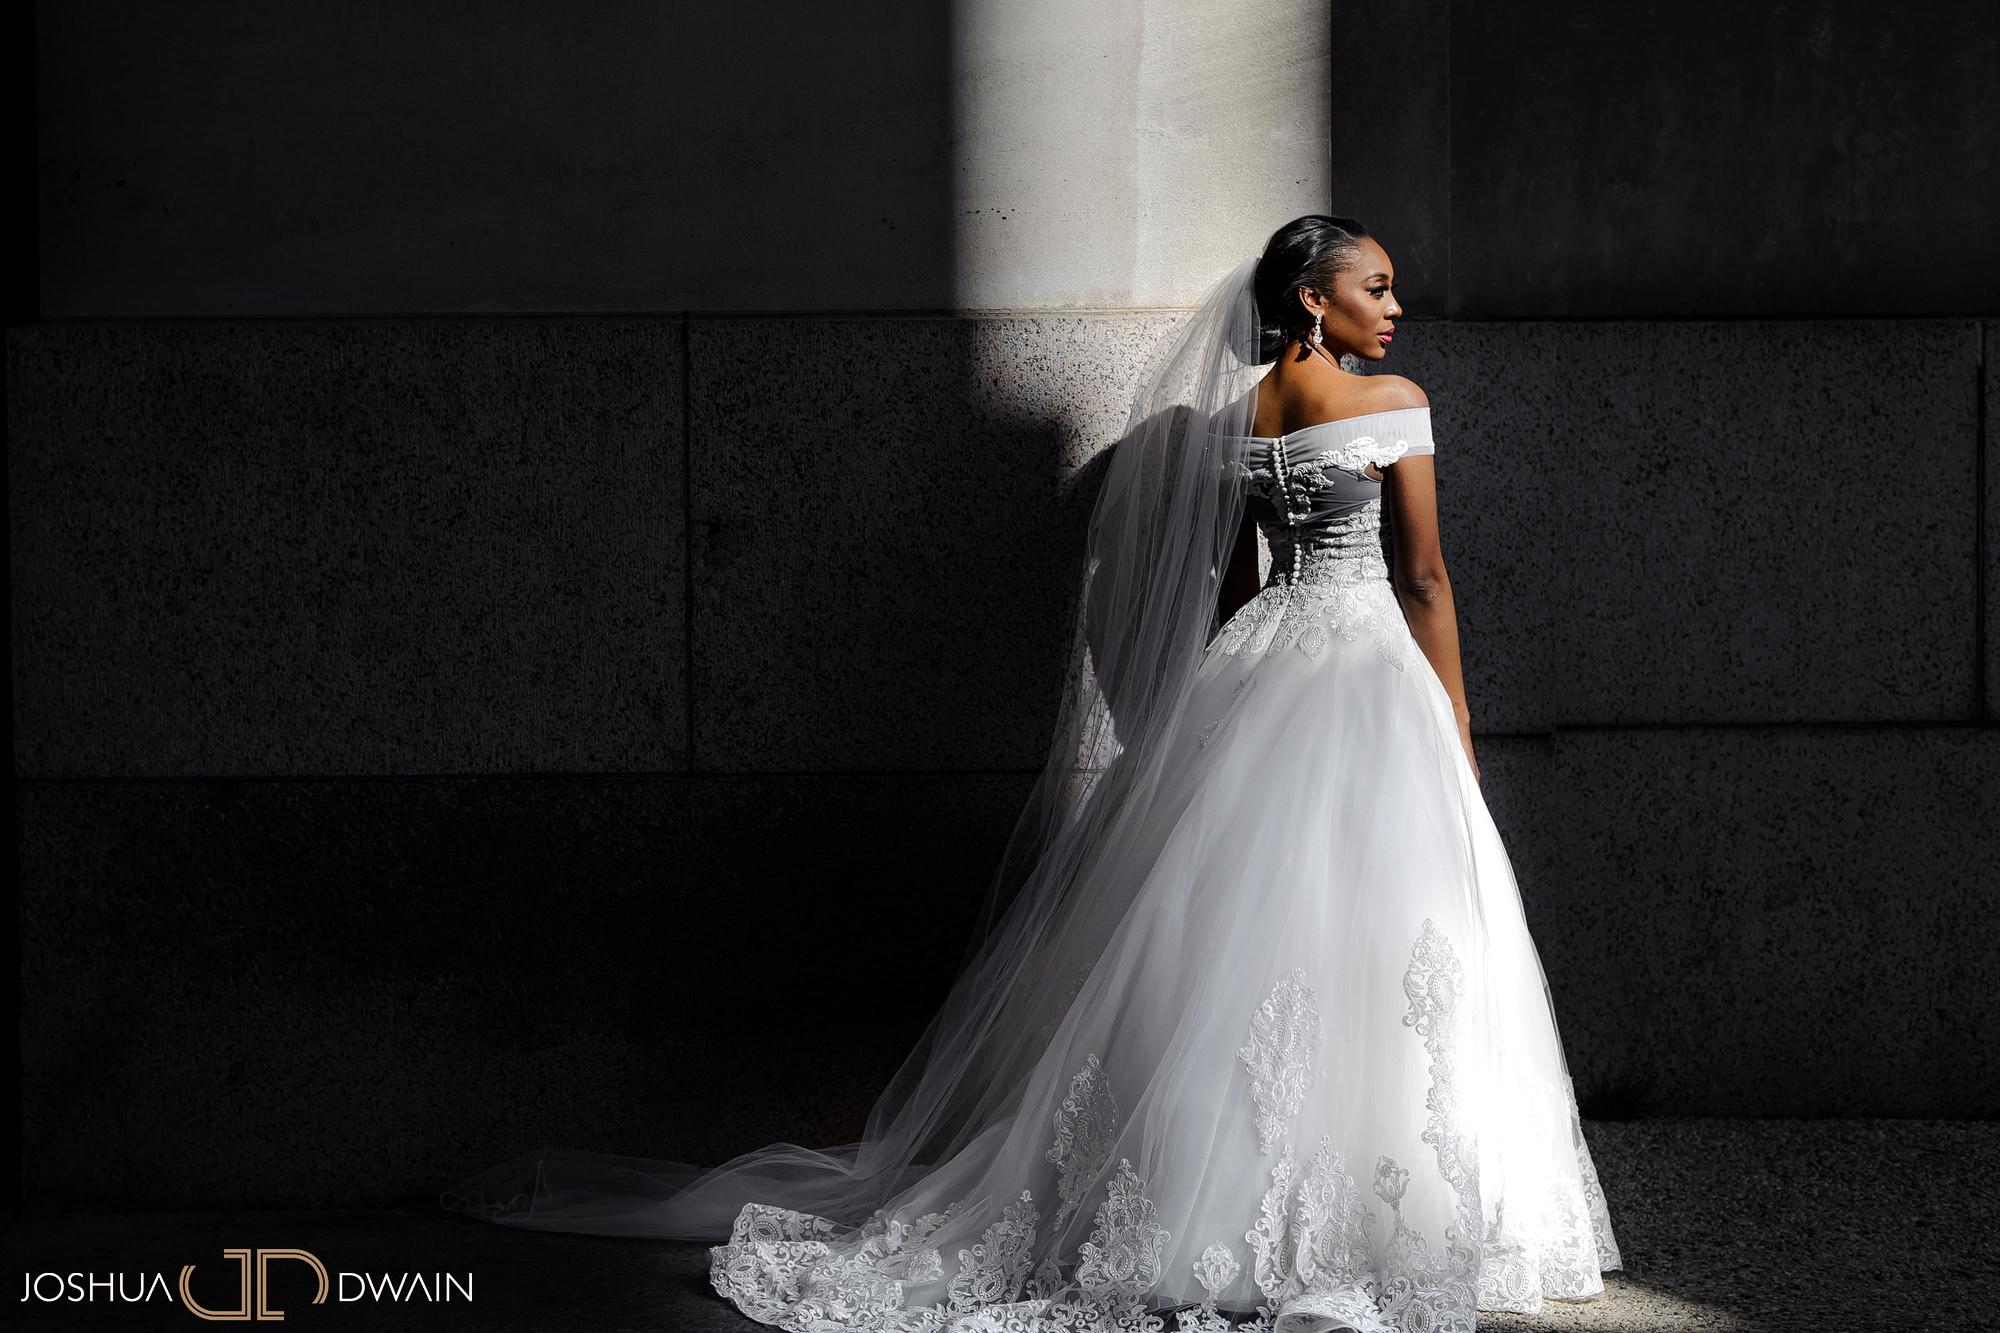 emerald-tolu--018-ronald-reagan-building-trade-center-best-washington-dc--wedding-photographer-joshua-dwain